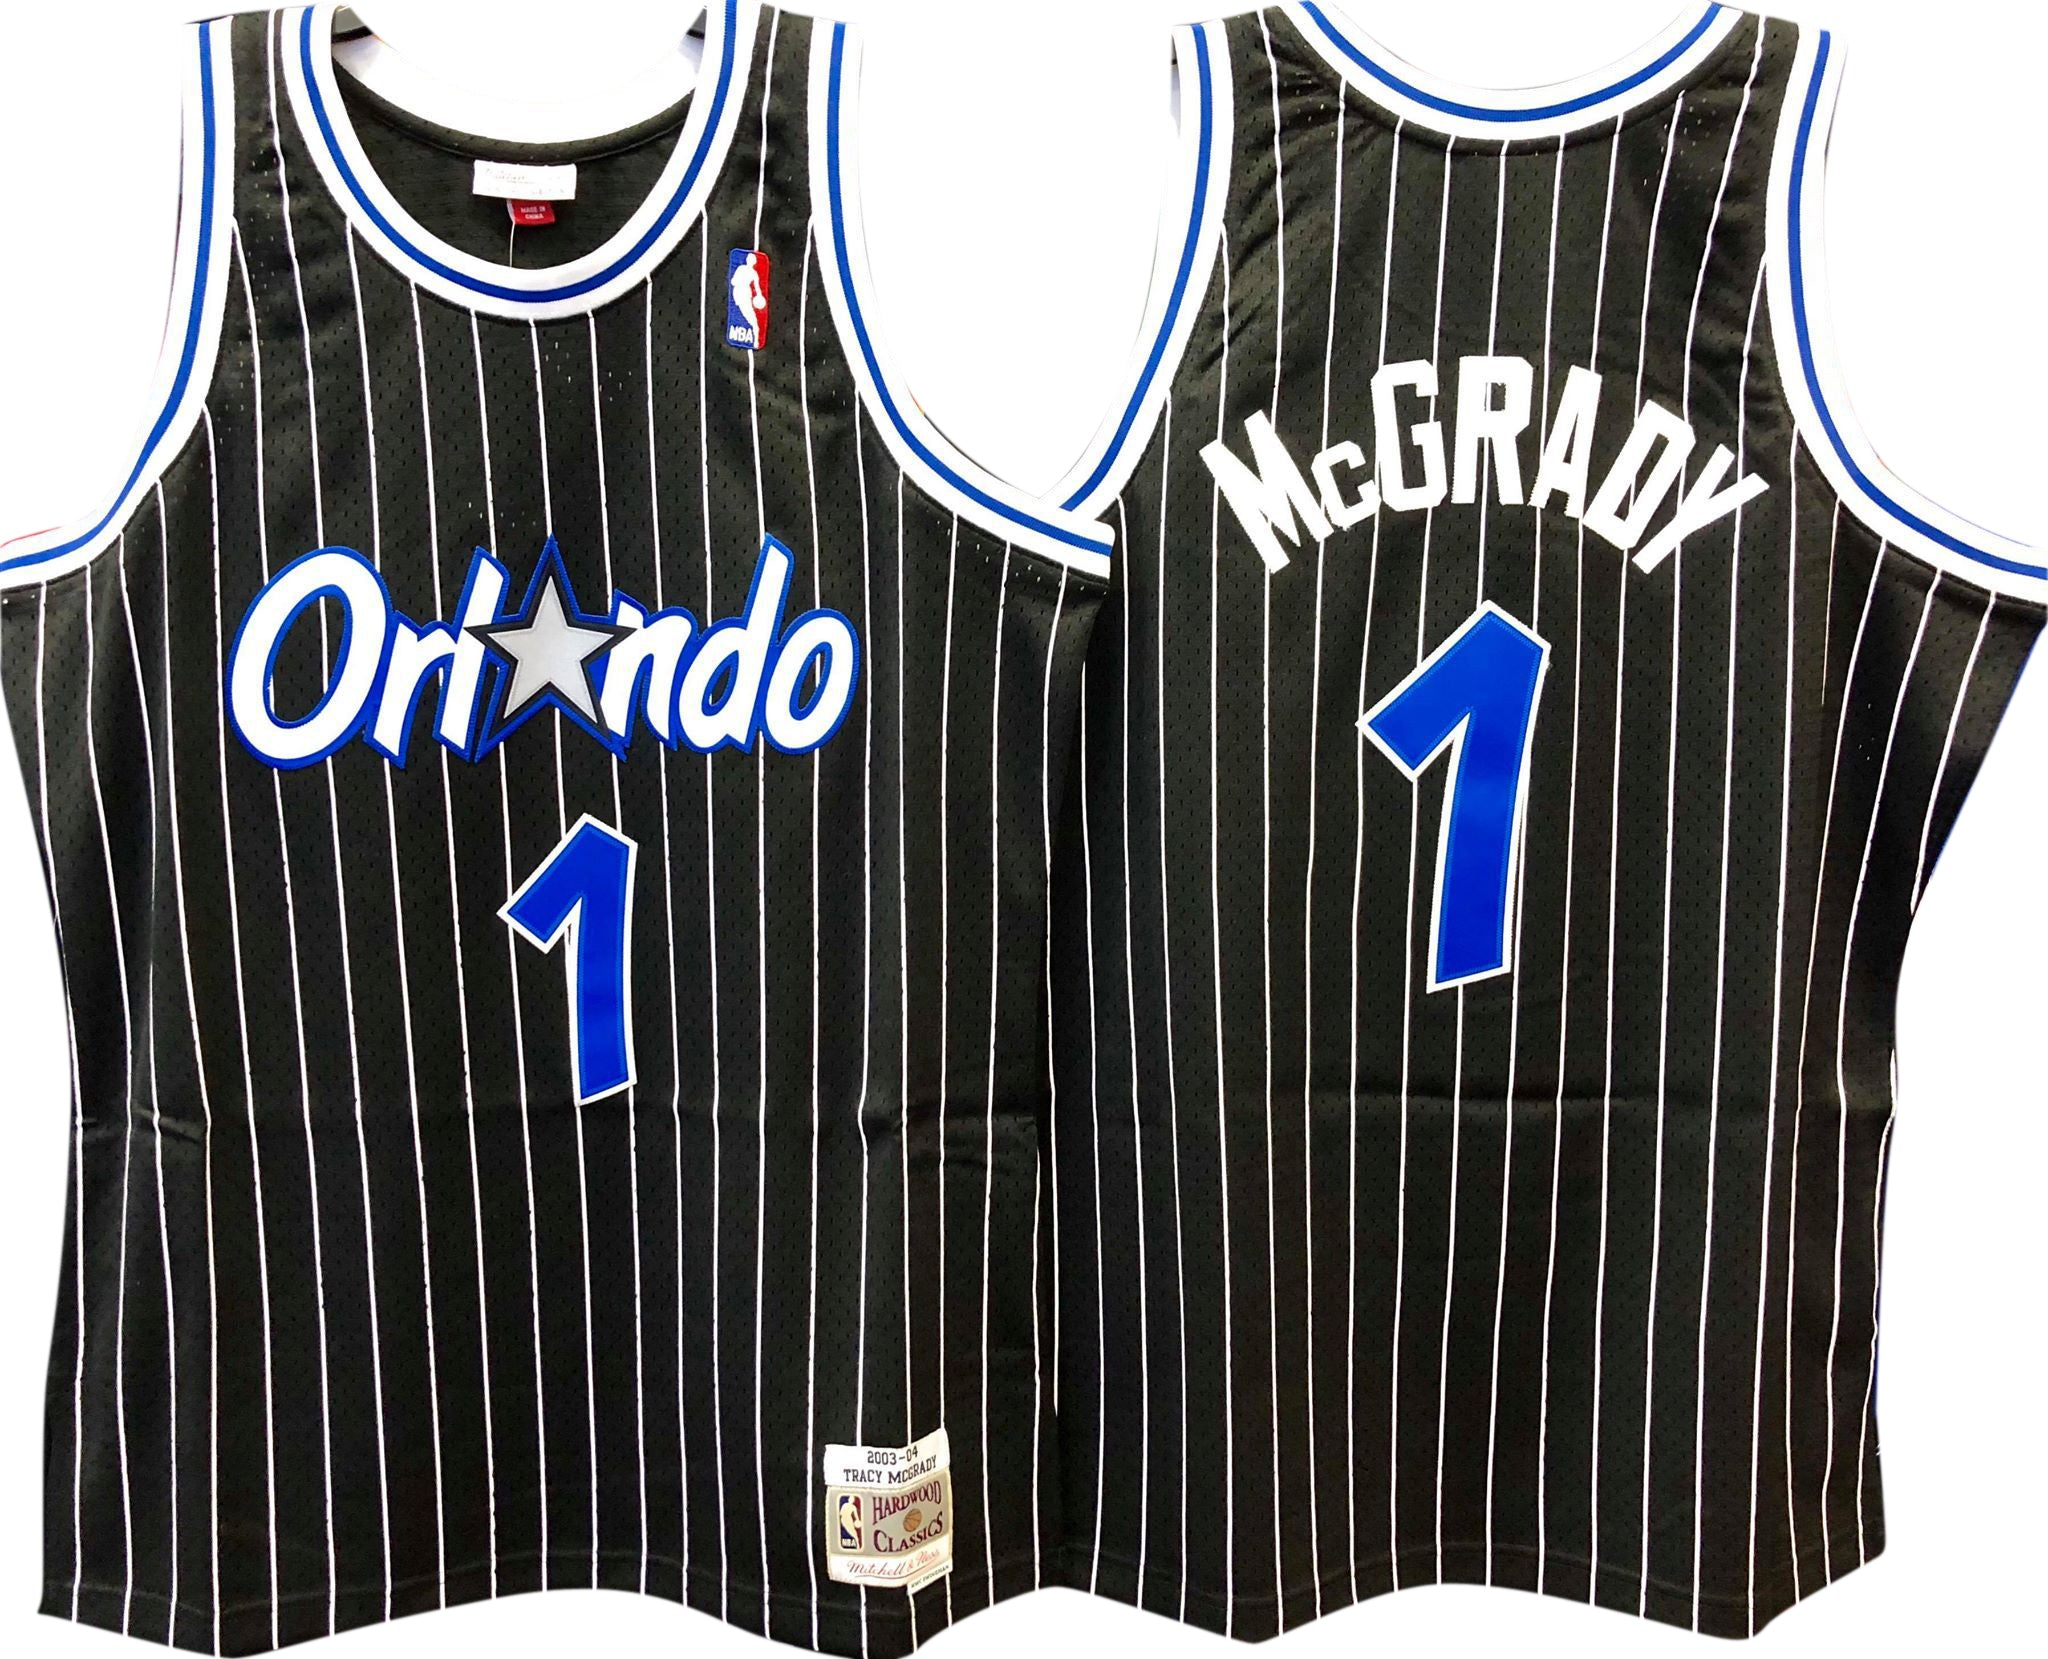 hot sale online d9314 5d8cc Tracy McGrady Orlando Magic Hardwood Classics Throwback NBA ...